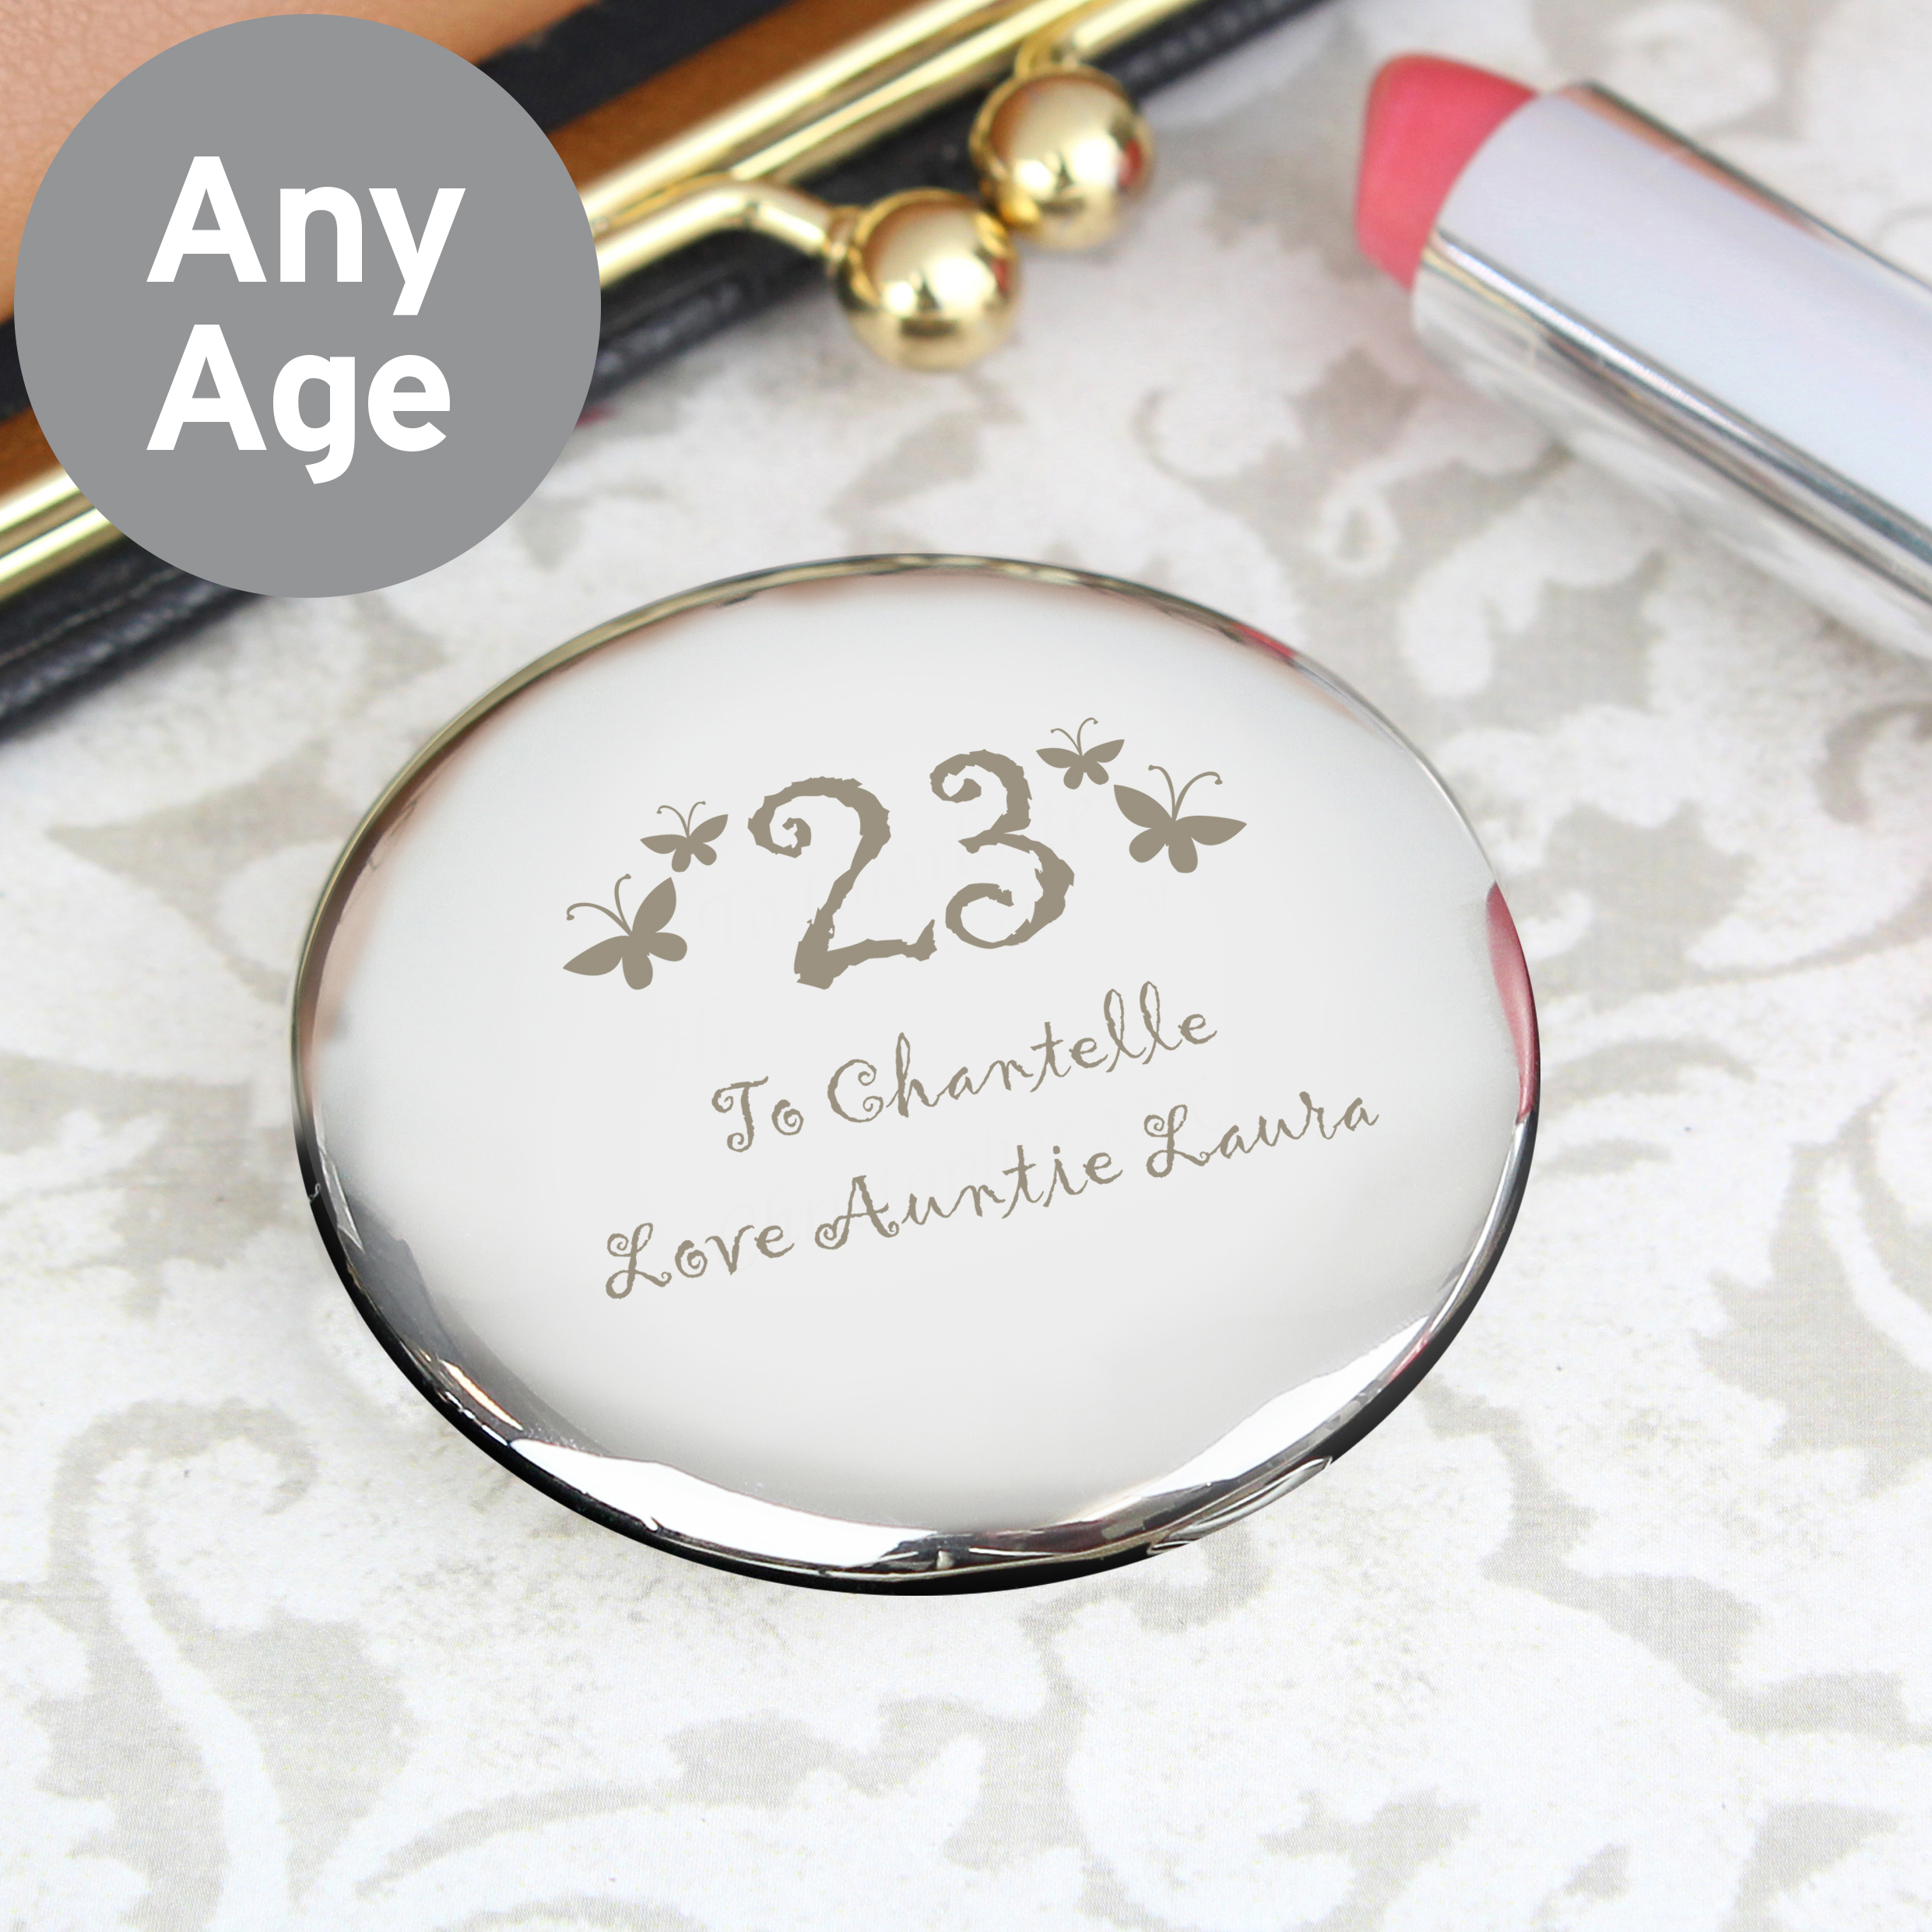 Engraved Birthday Butterfly Motif Oval Compact Mirror